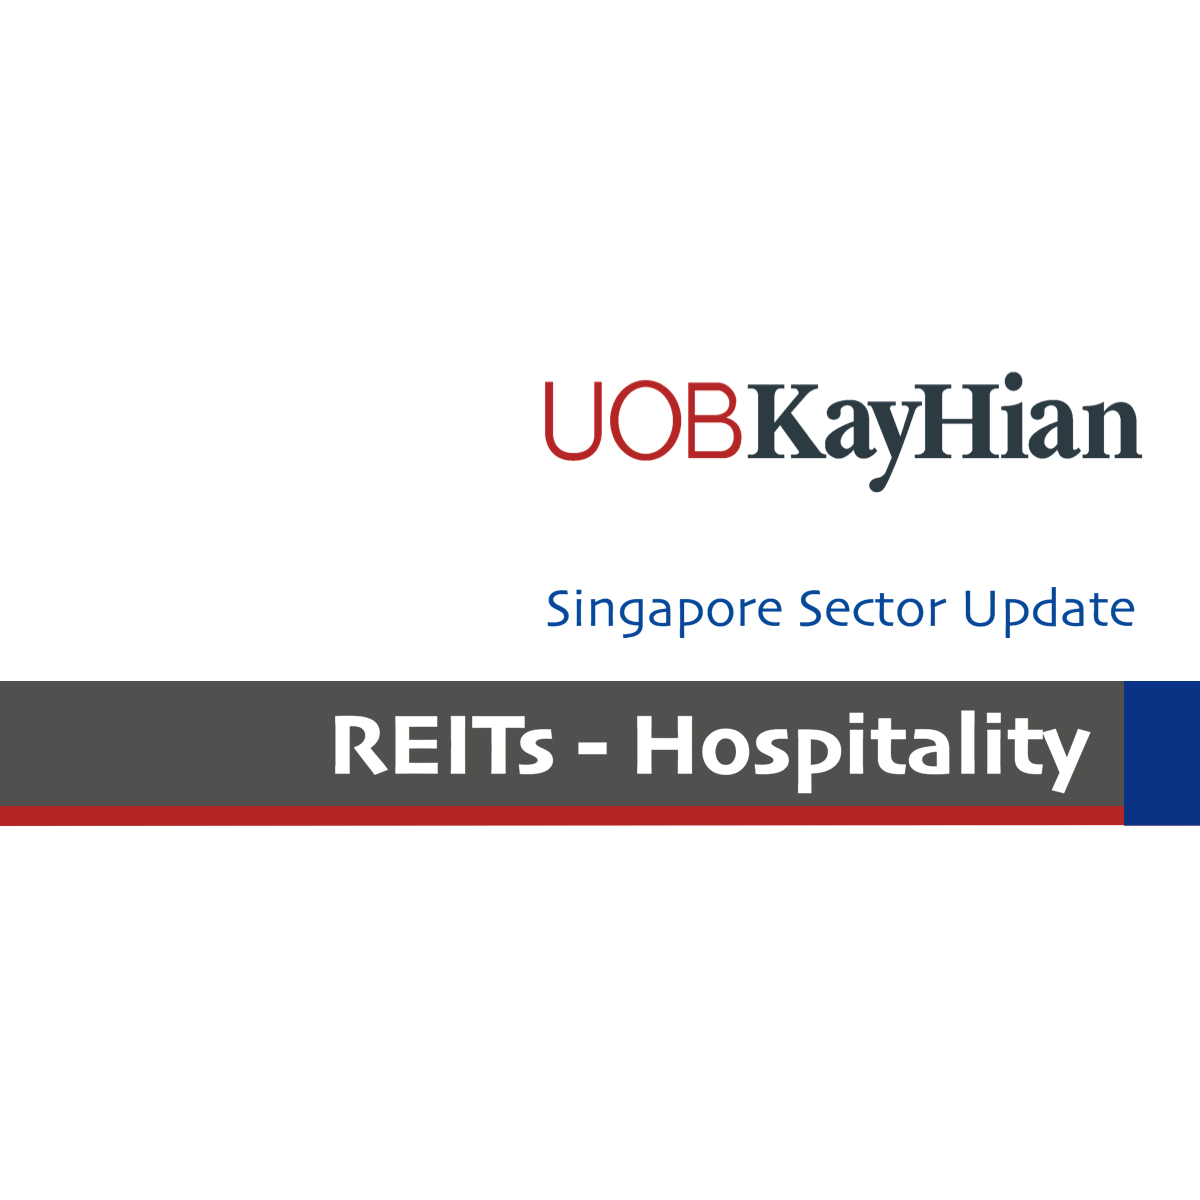 Singapore Hospitality REITs - UOB Kay Hian 2017-04-19: New Hope For Hoteliers